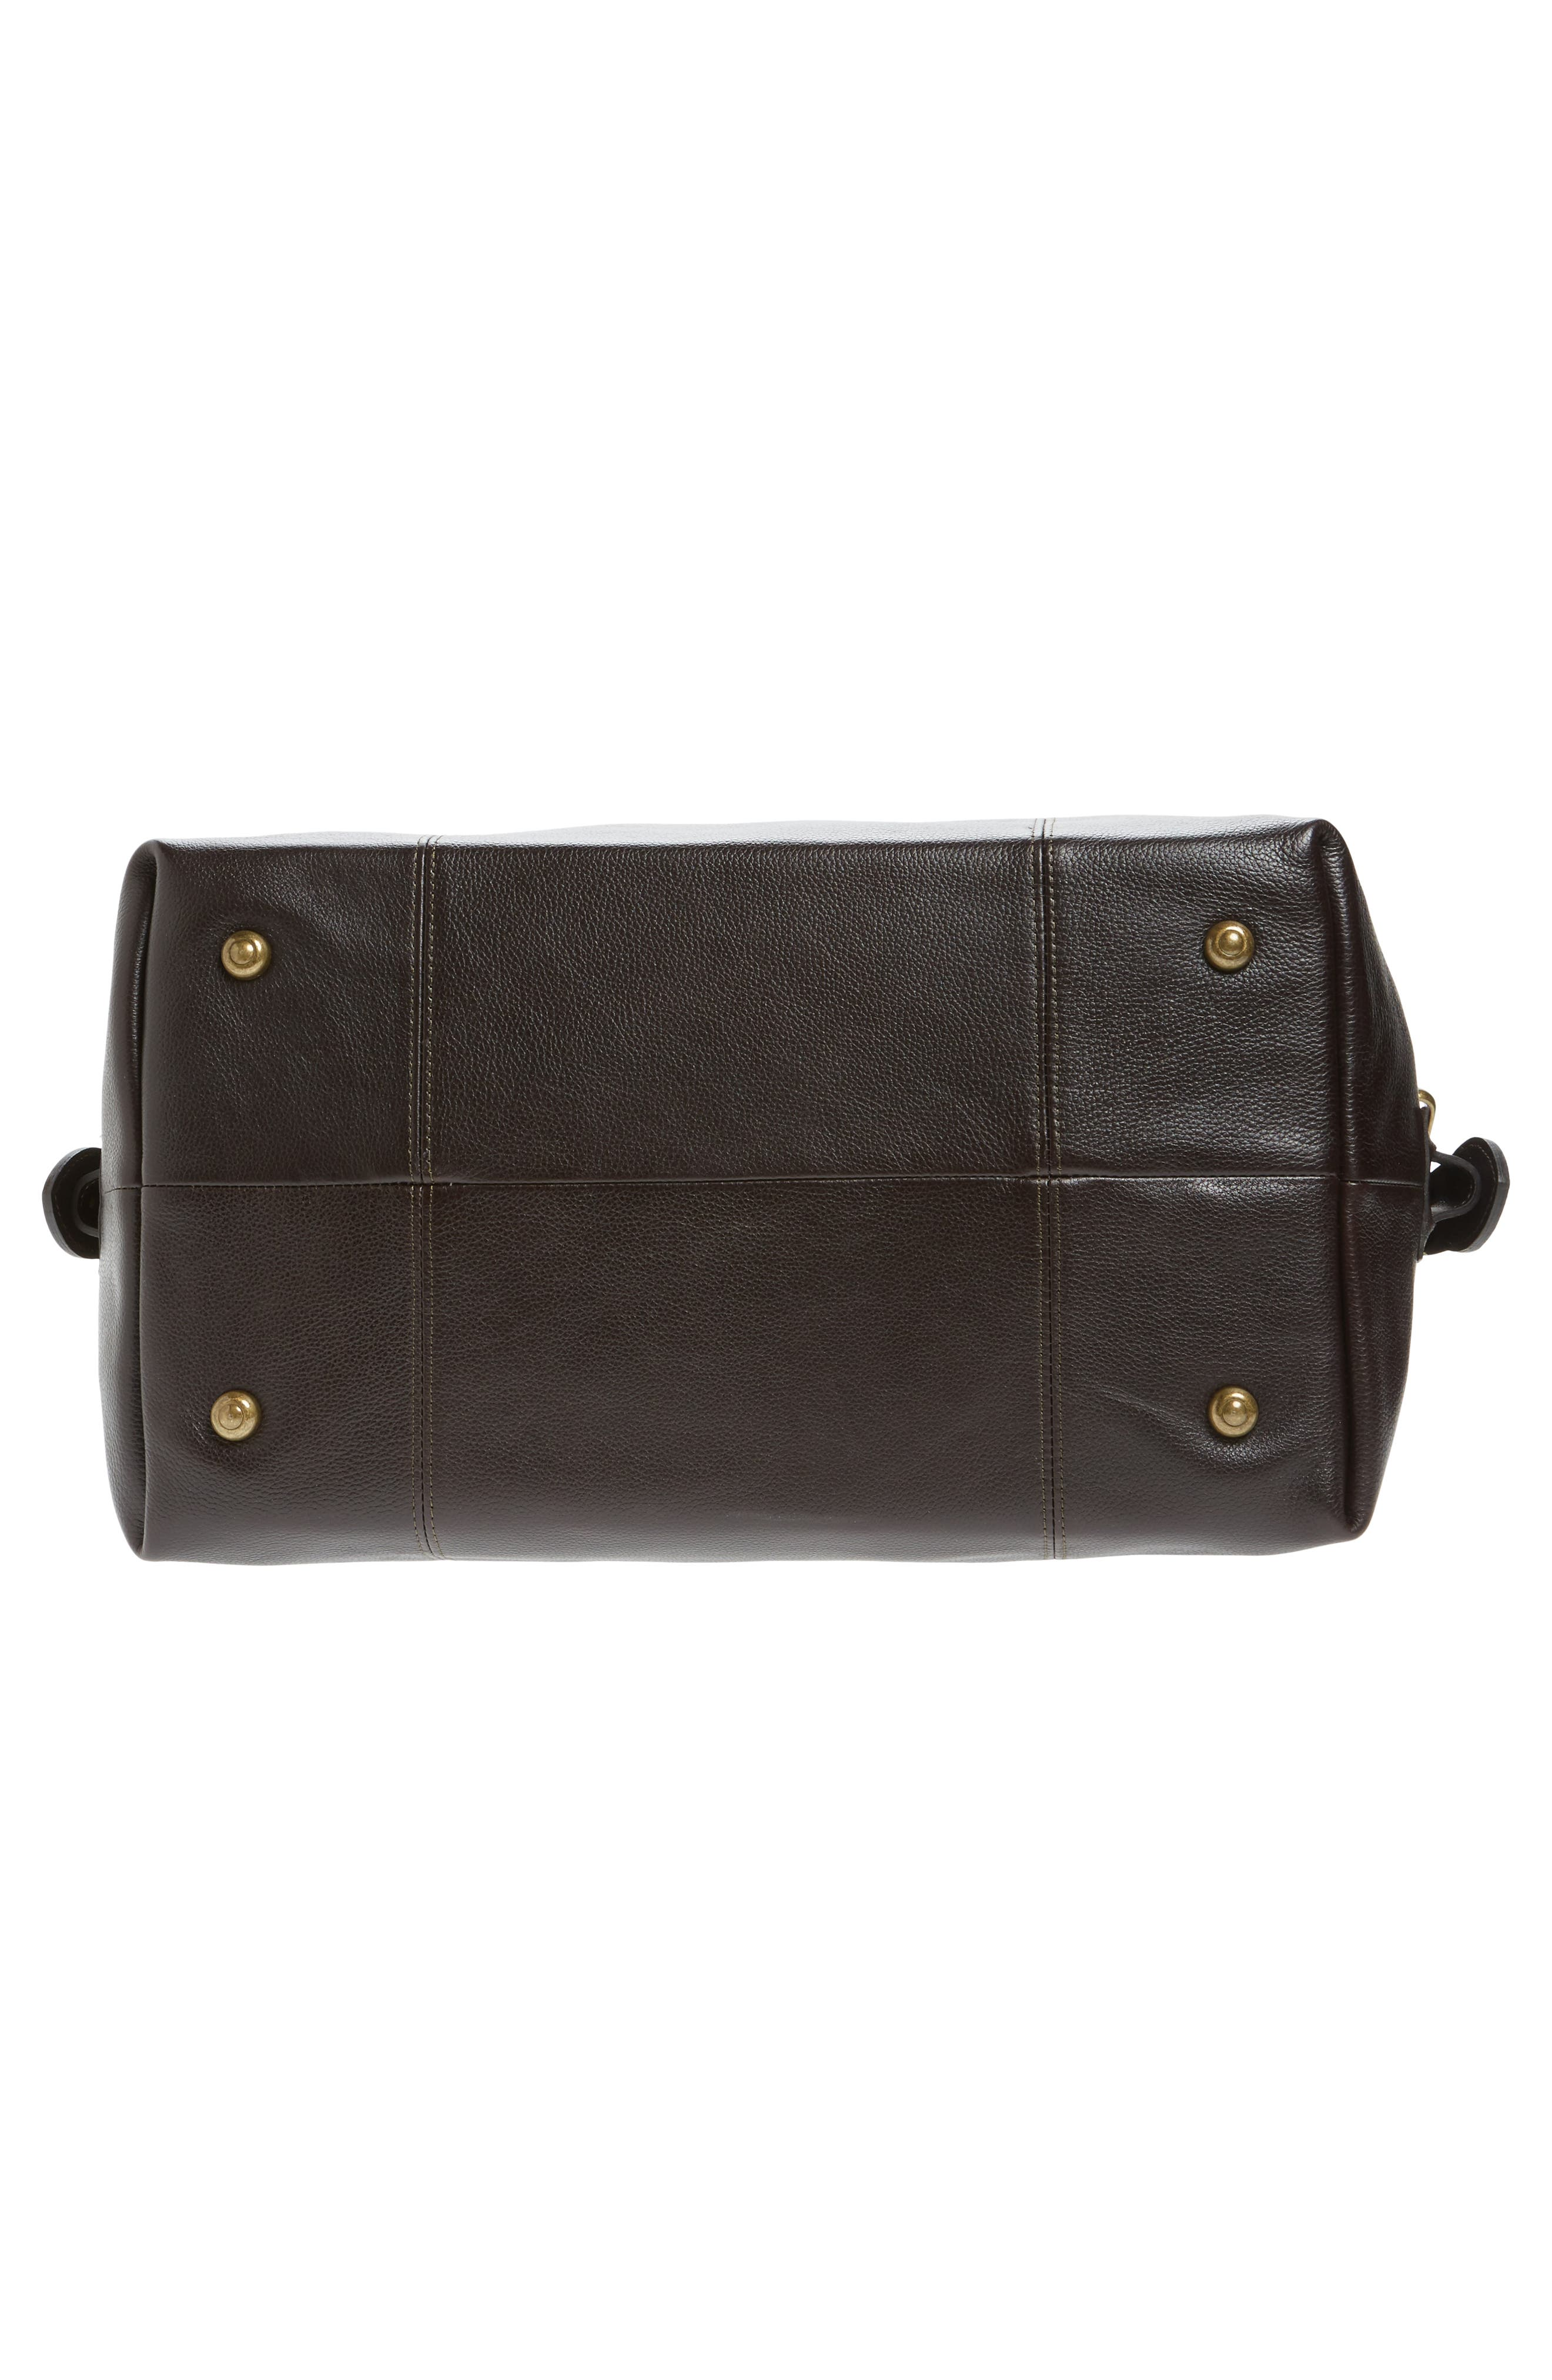 BARBOUR, Leather Travel Bag, Alternate thumbnail 6, color, CHOCOLATE